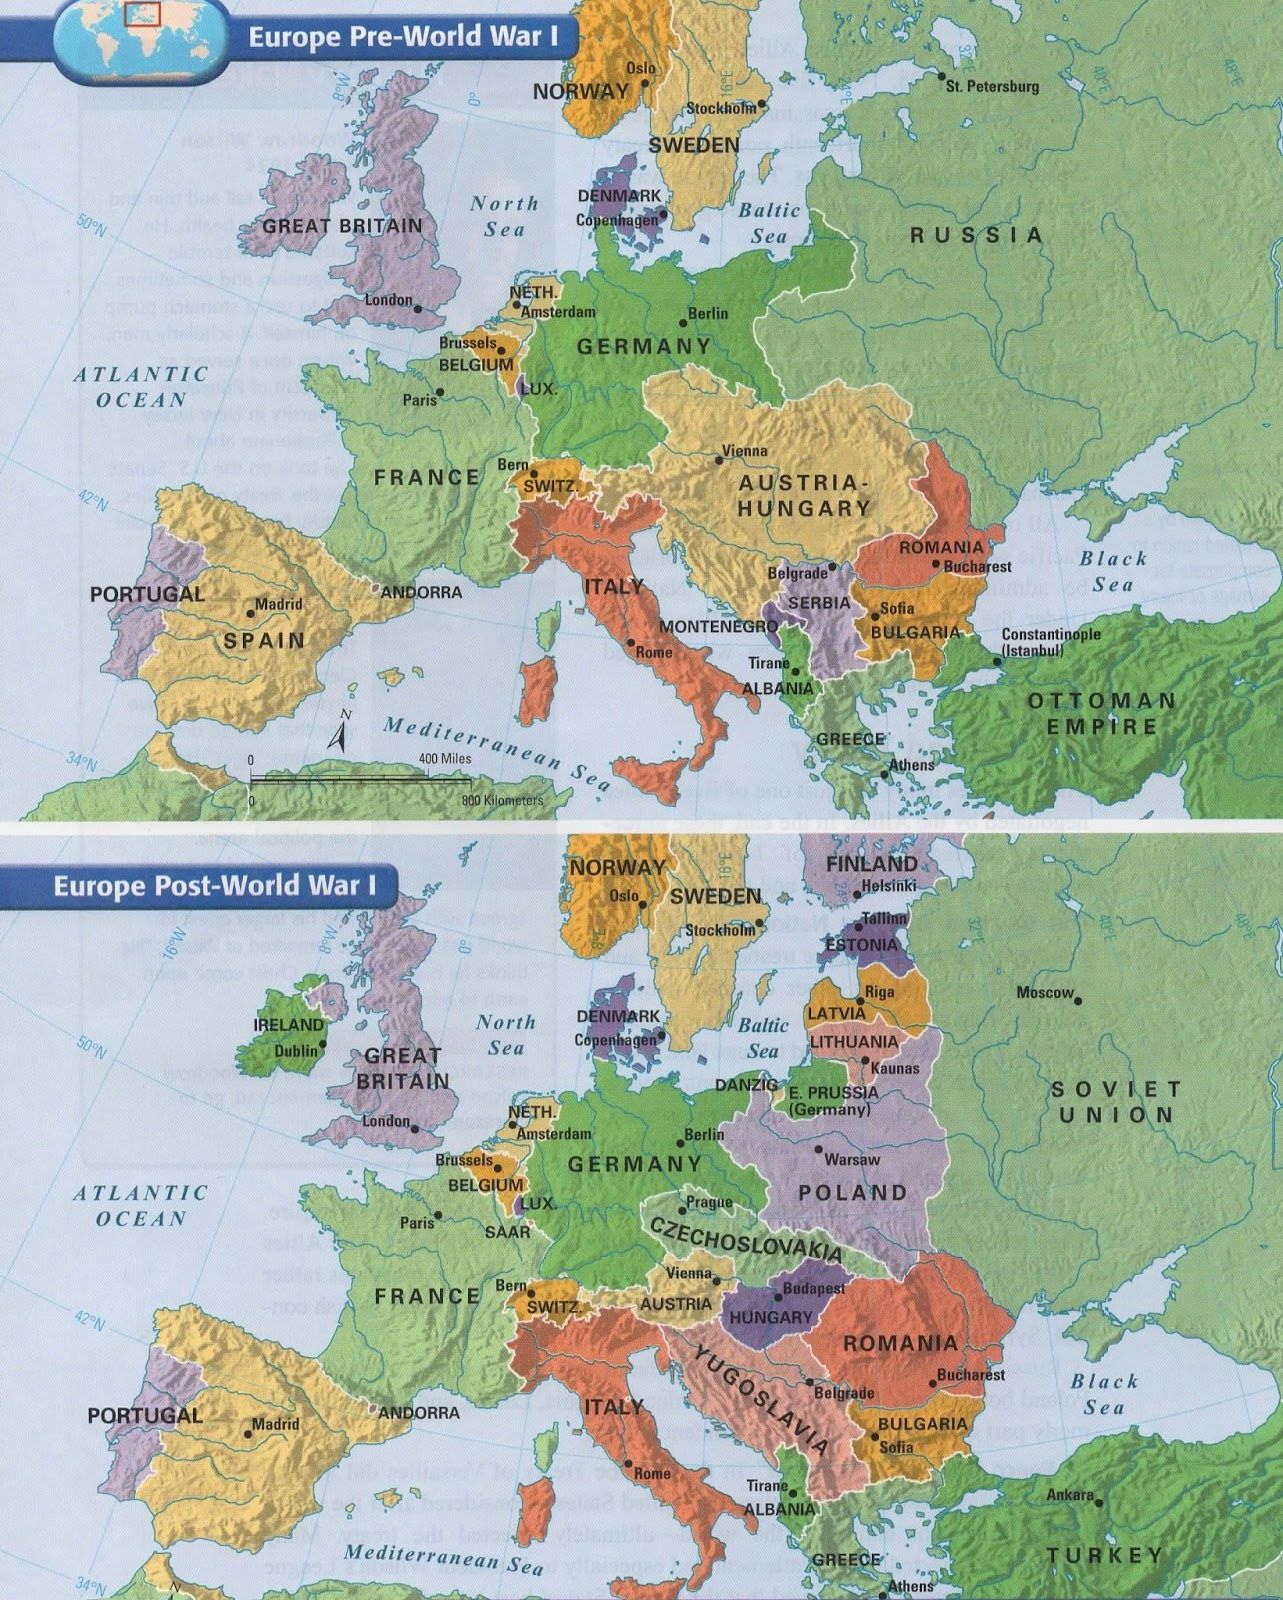 Source # 4  Maps Of Europe Before World War One And After World War One